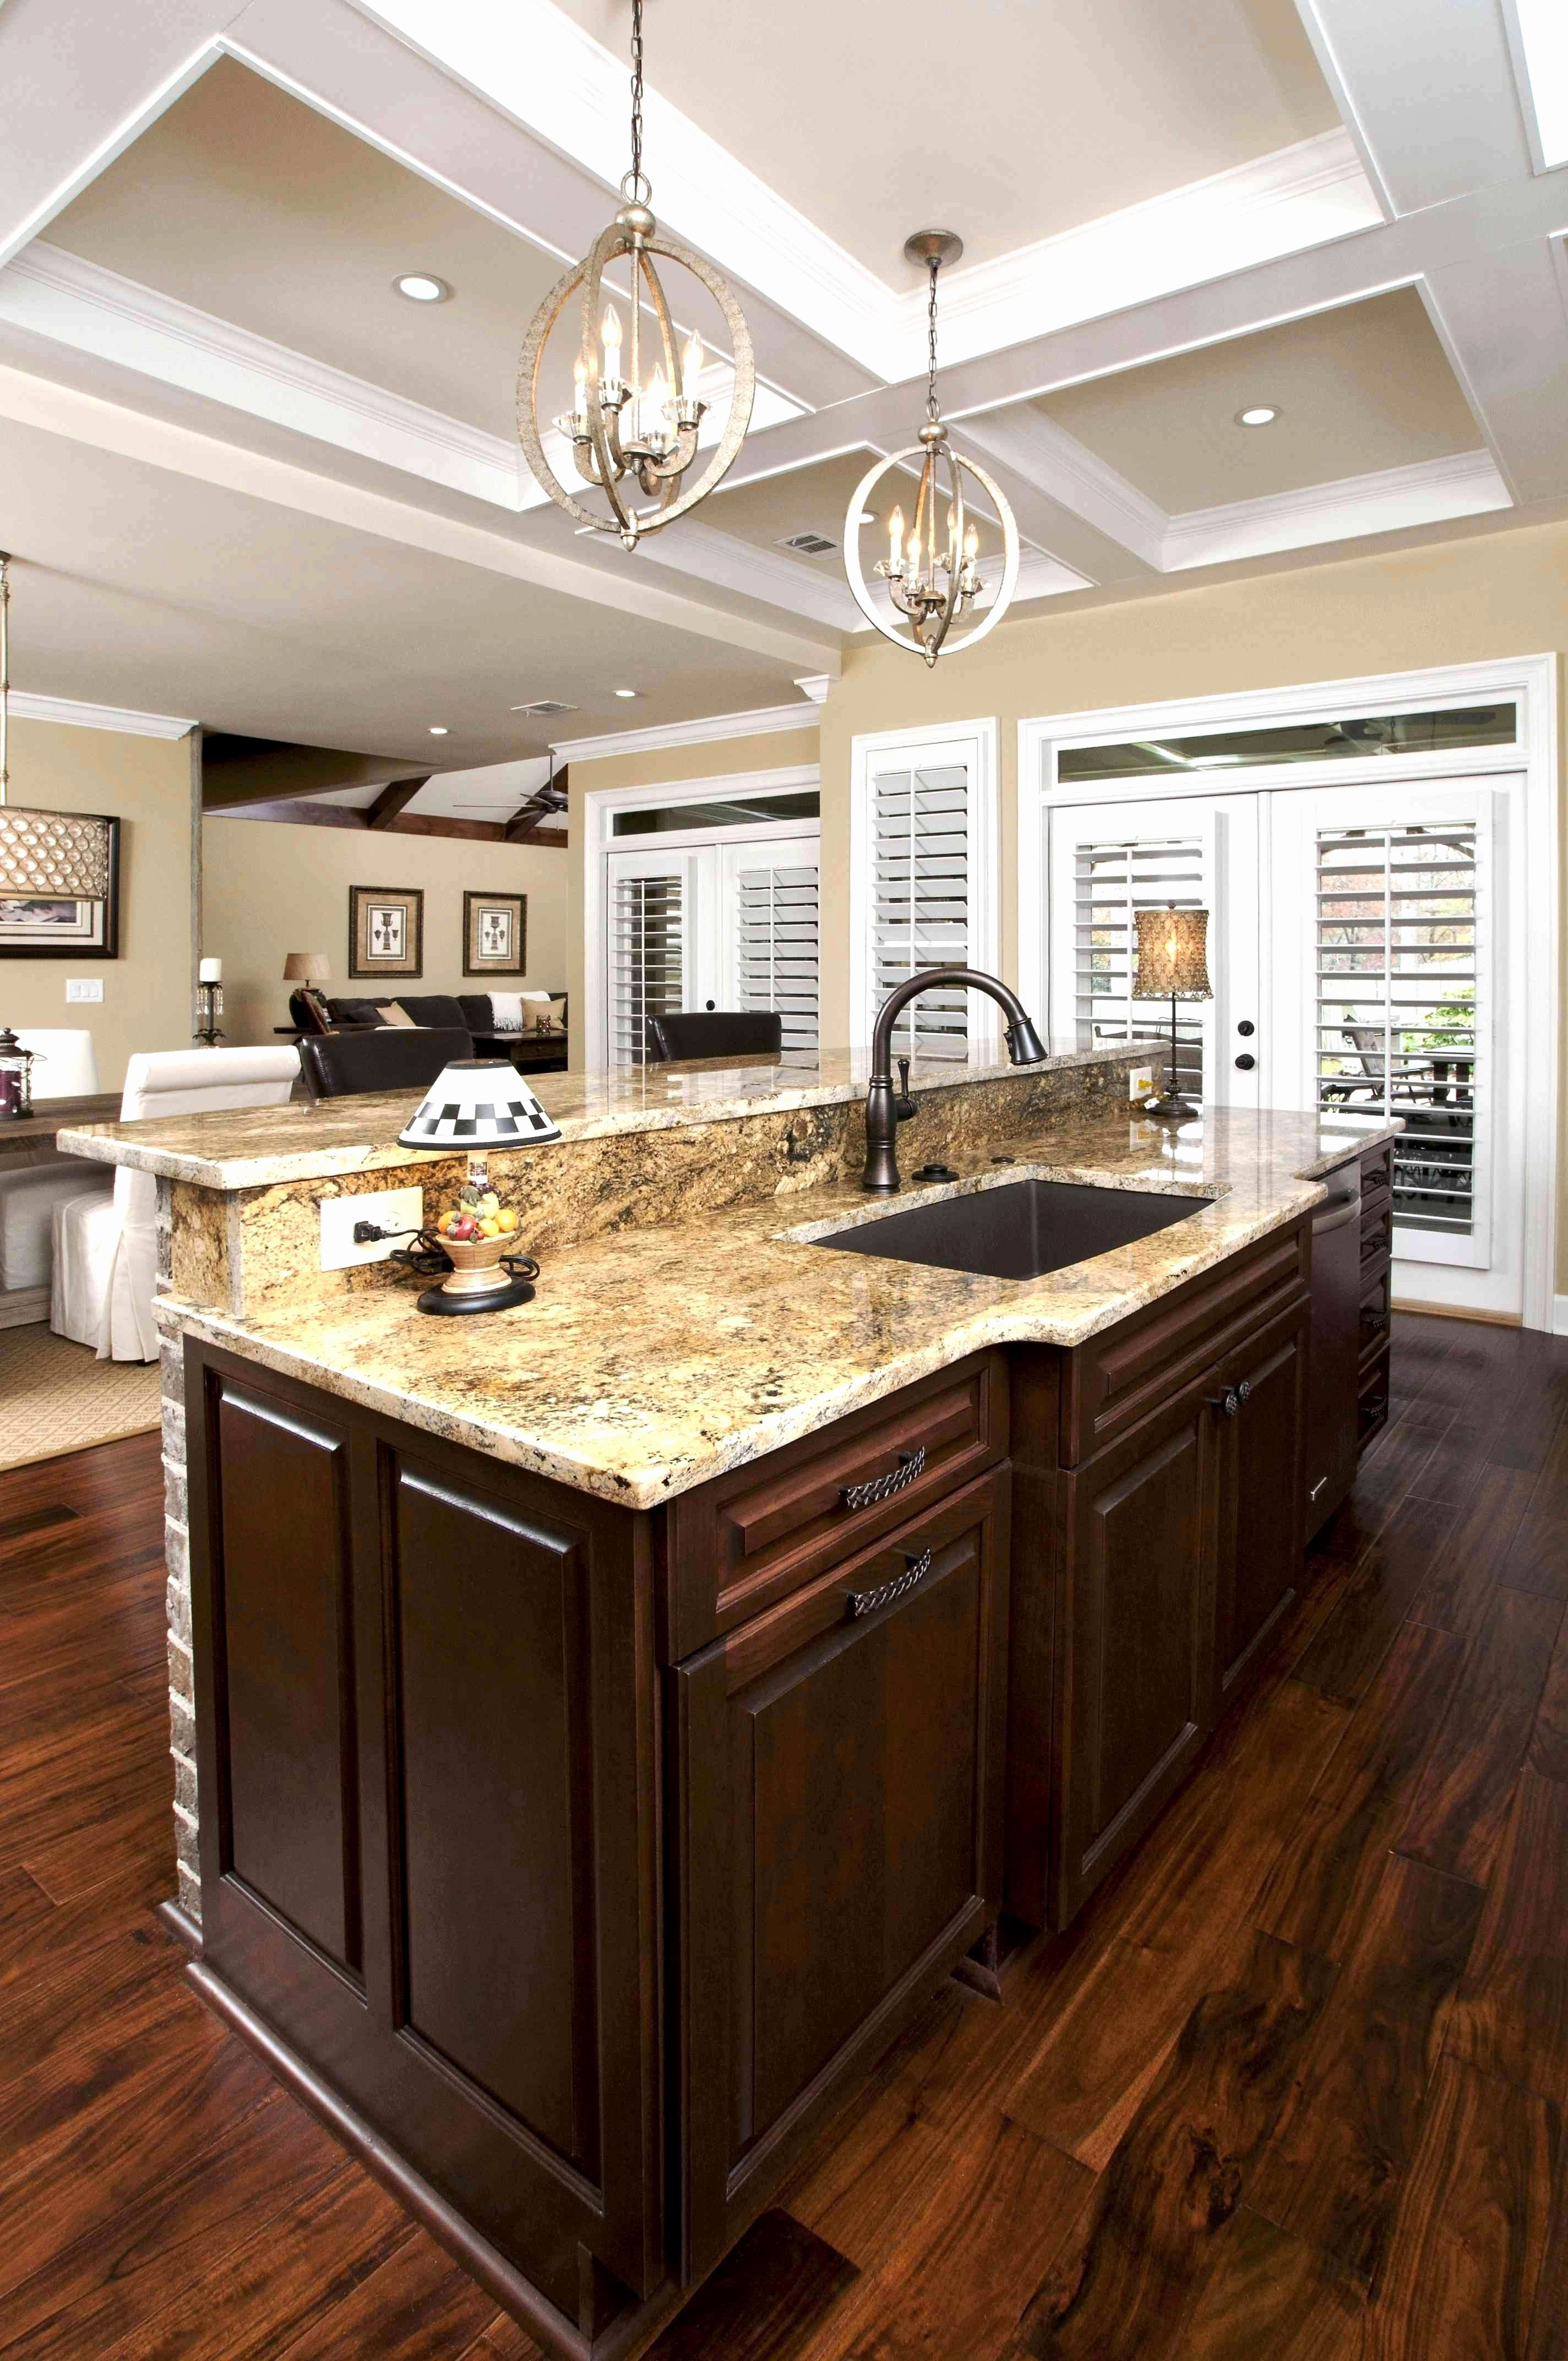 antique white cabinets with dark hardwood floors of lovely vintage kitchen cabinets home design minimalist inside cabinet for kitchen best exclusive kitchen designs alluring kitchen cabinet 0d bright lights